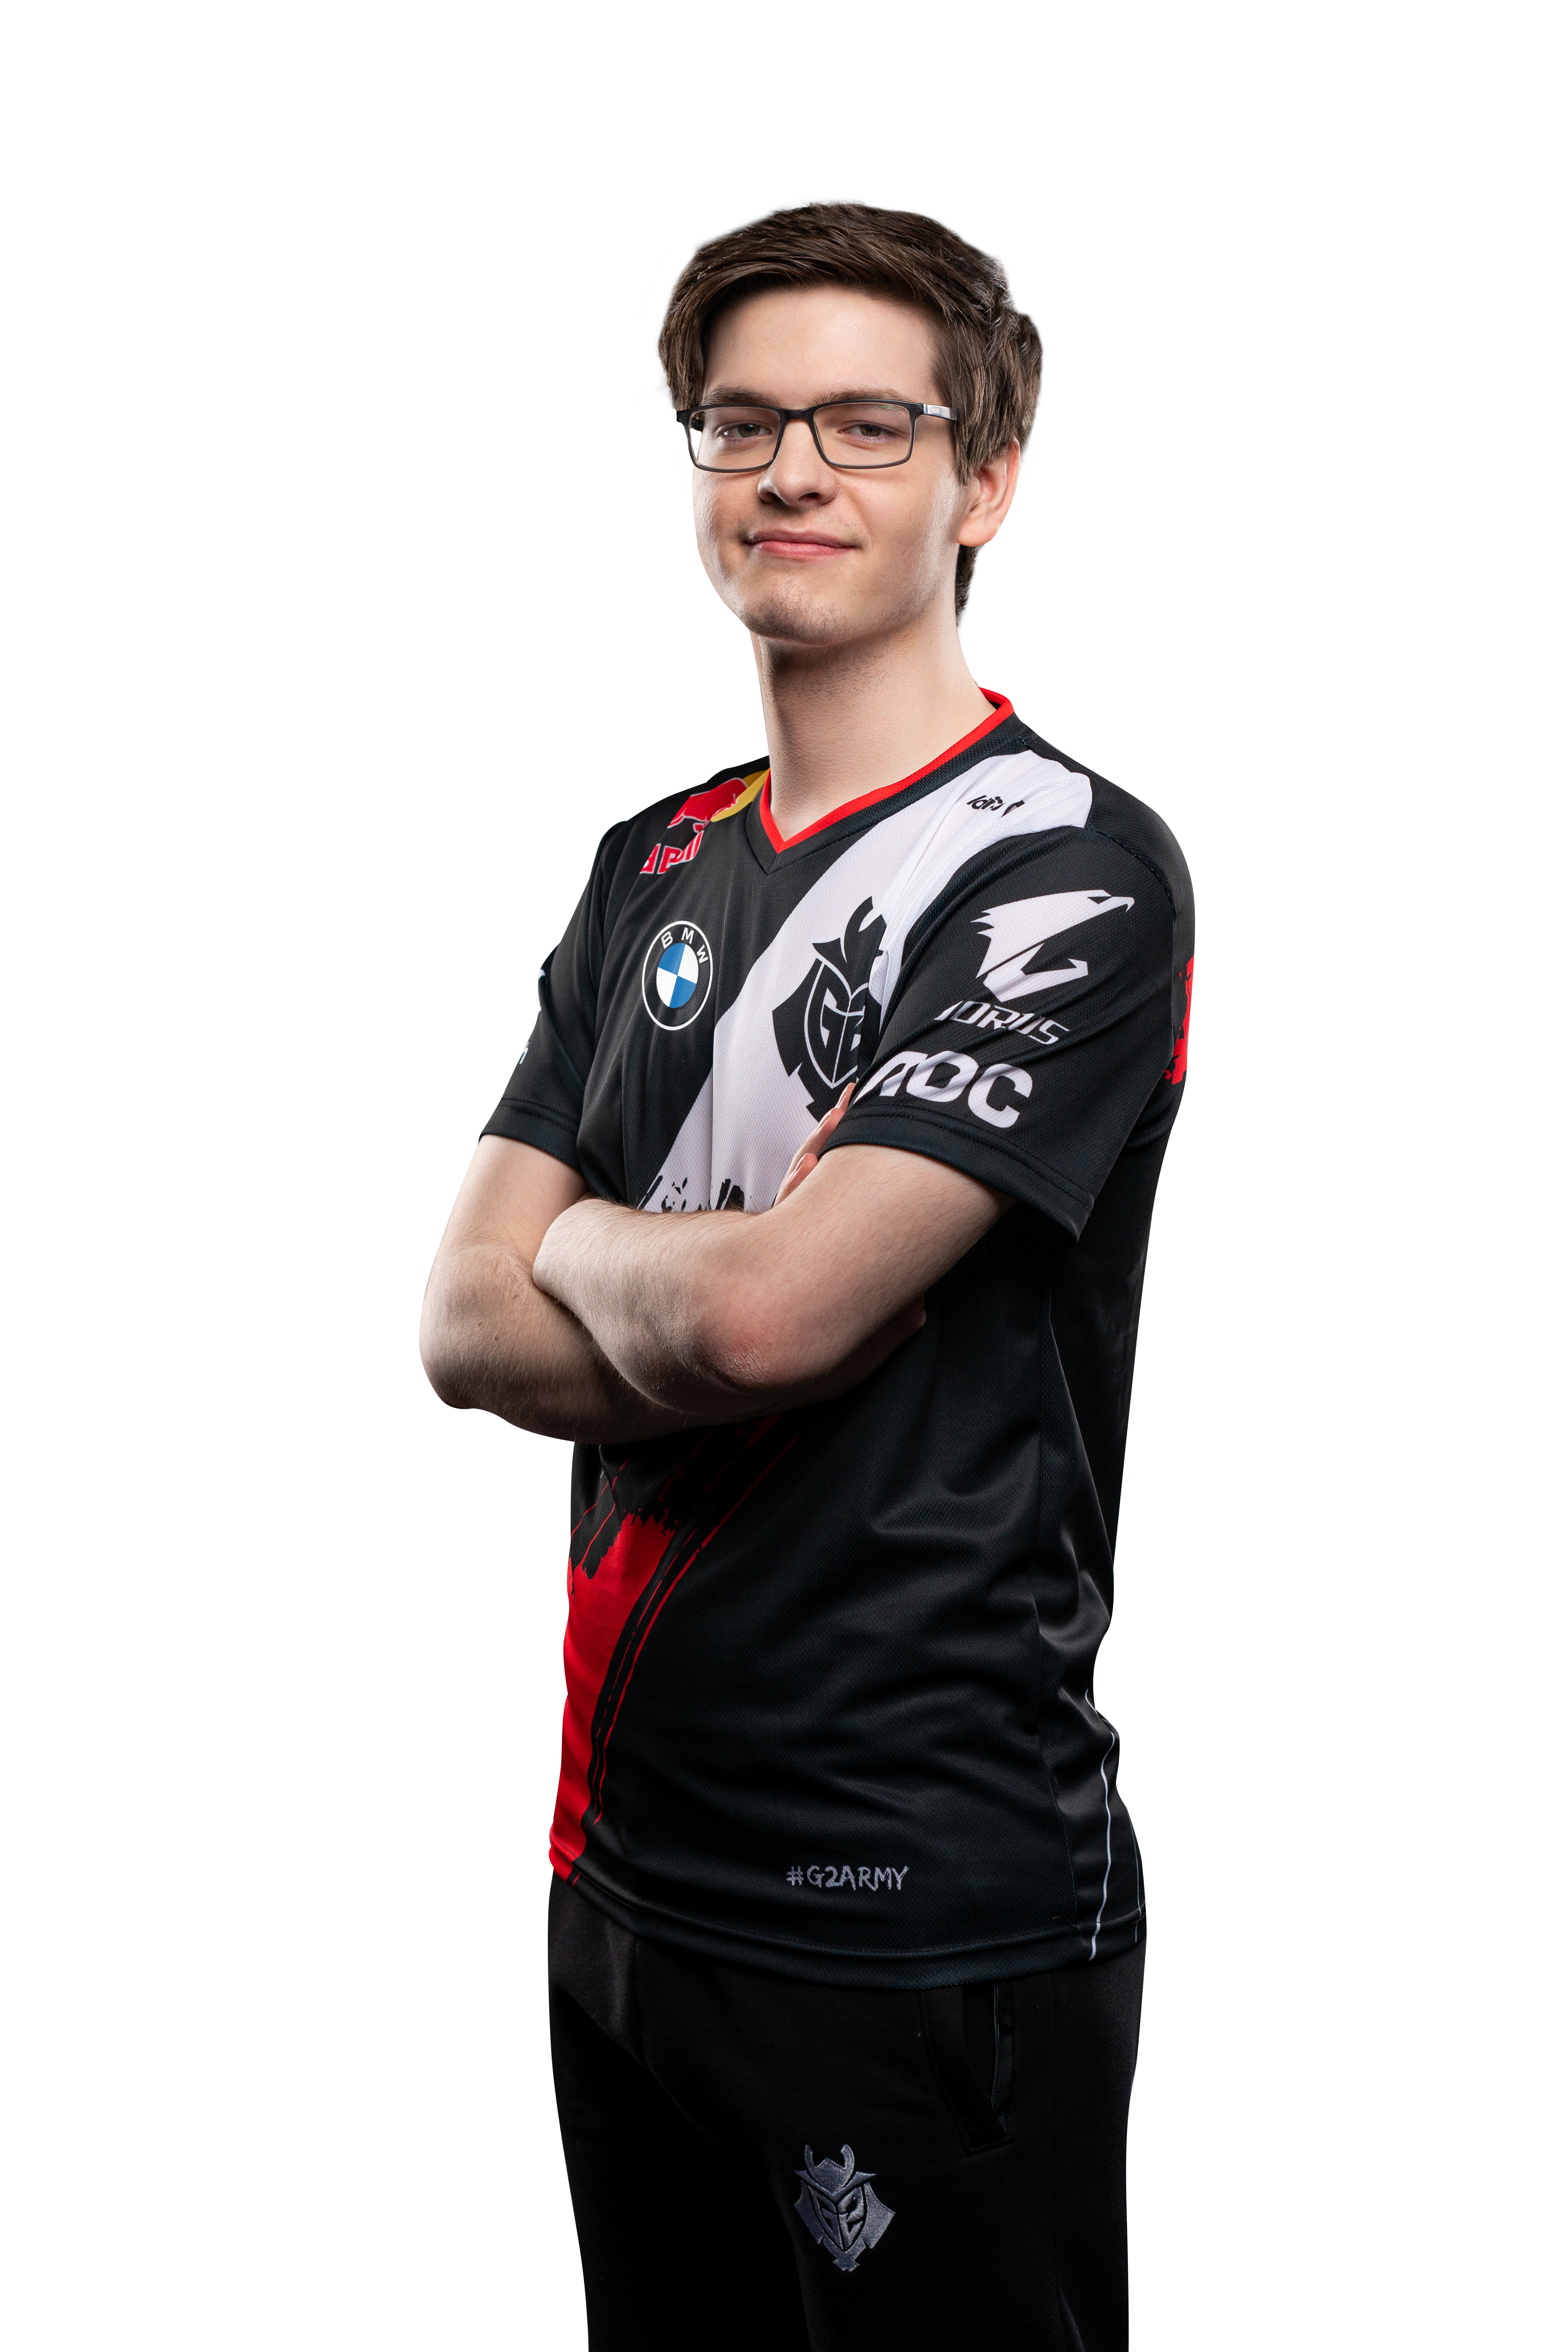 G2 Esports star Mikyx poses with his arms crossed